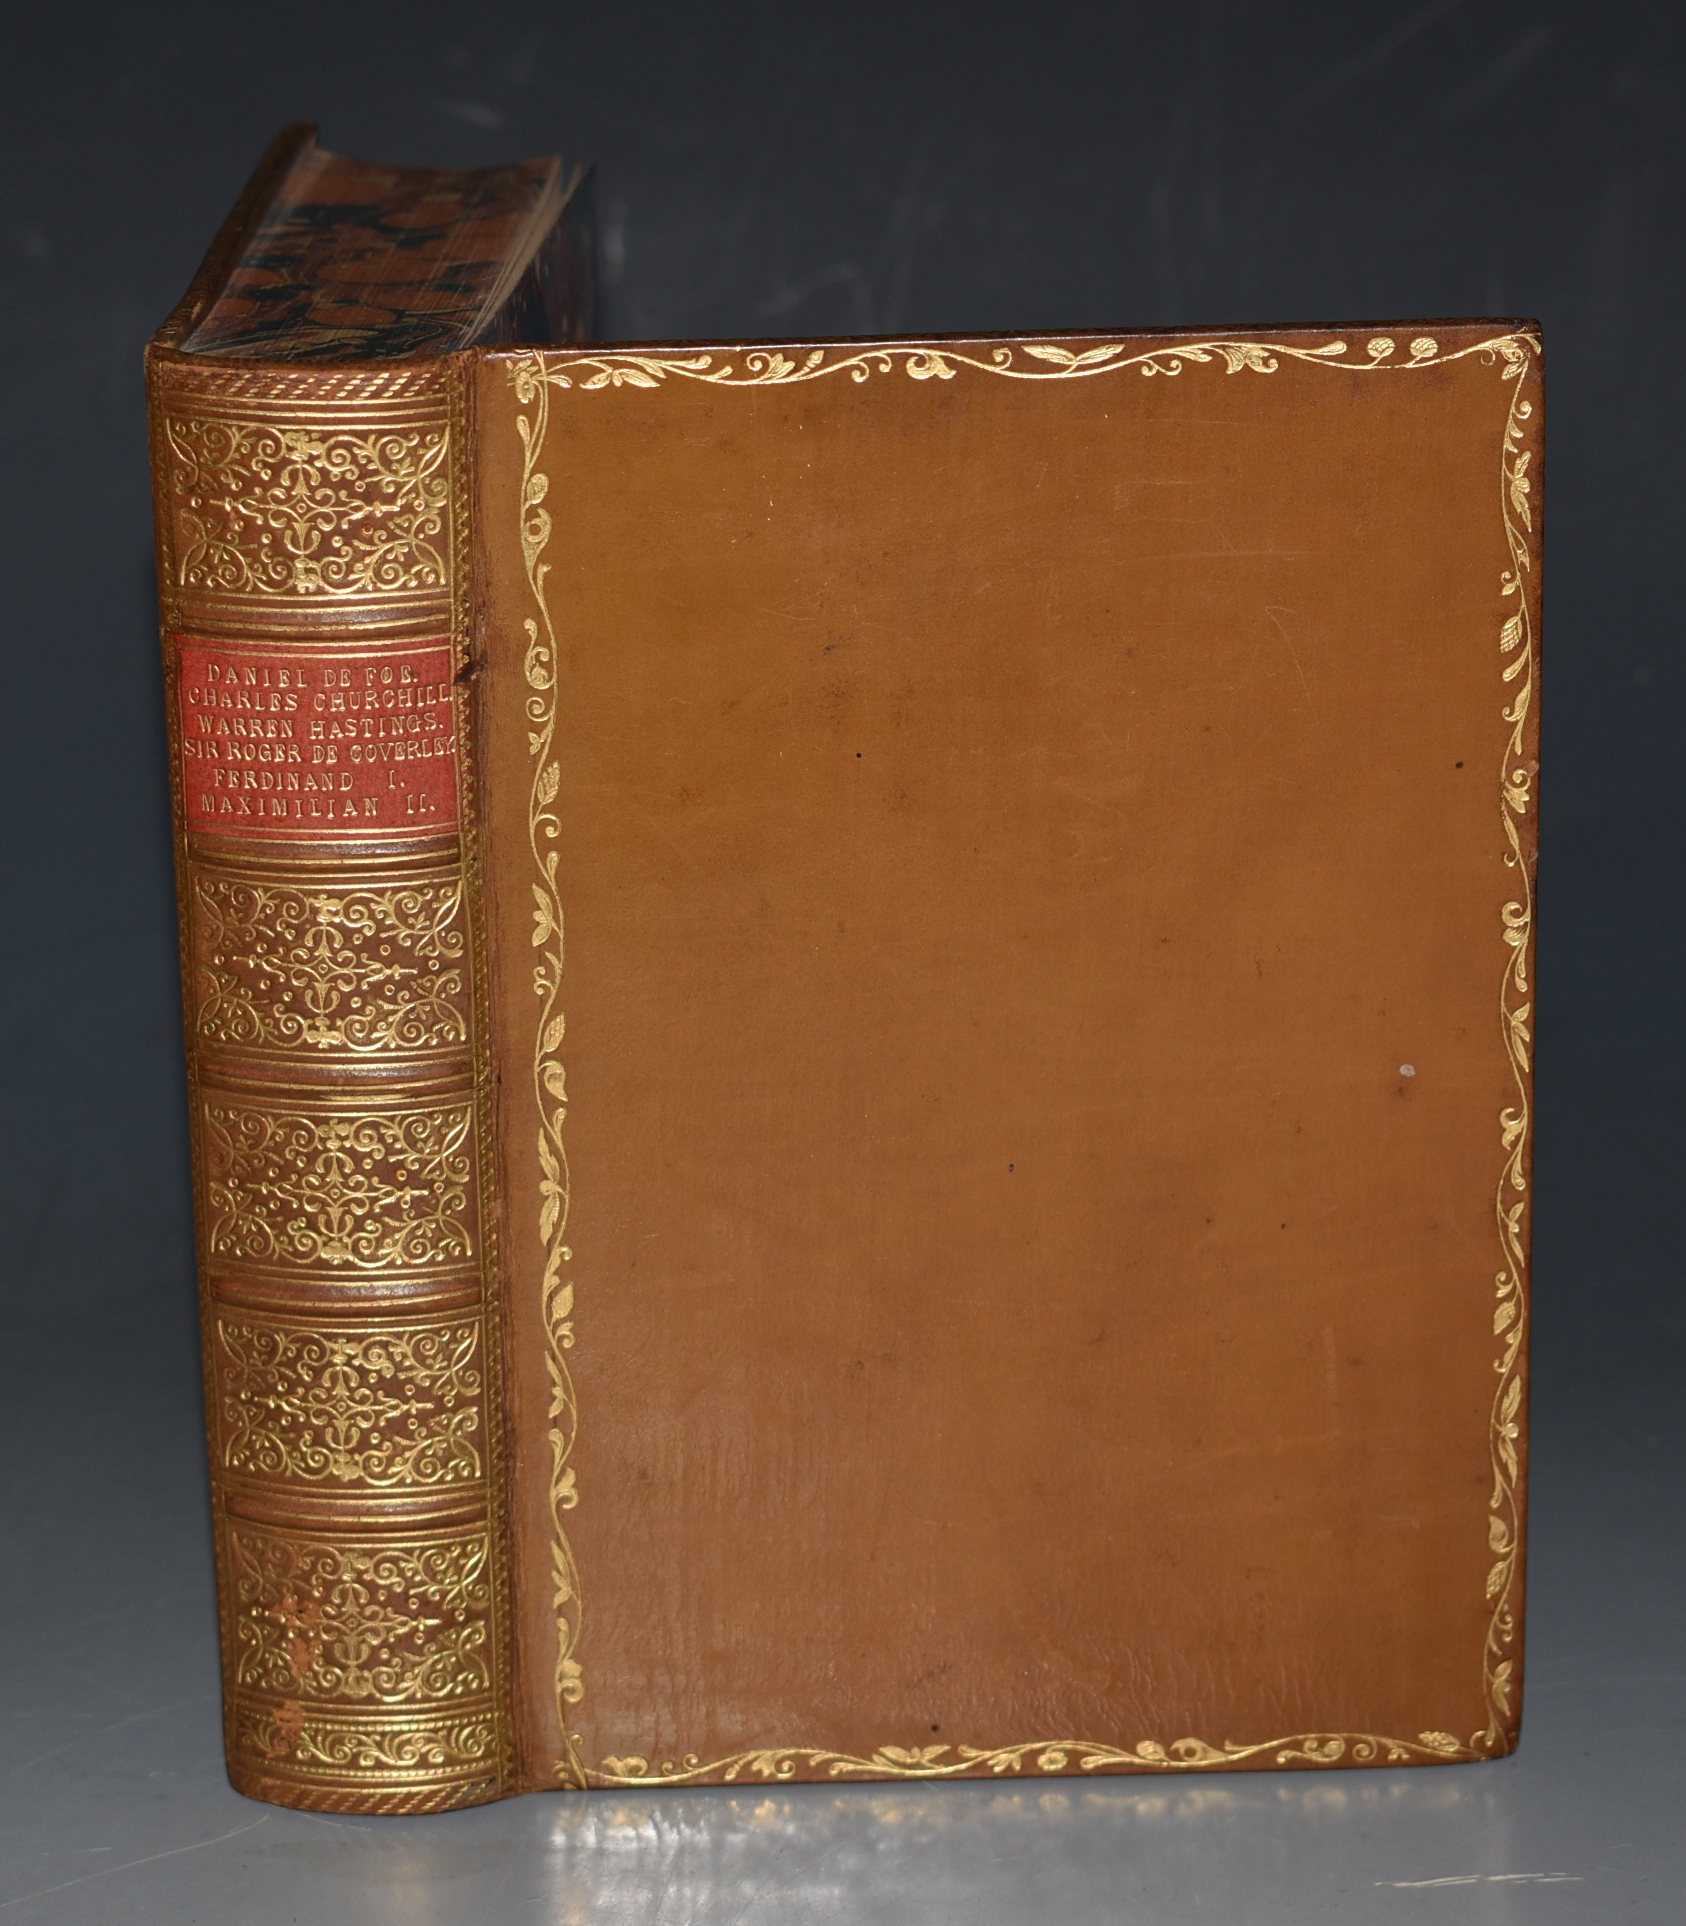 Image for Daniel De Foe and Charles Churchill. Warren Hastings, Sir Roger De Coverly, Ferdinand I and Maximilian II of Austria. Five Volumes in One.